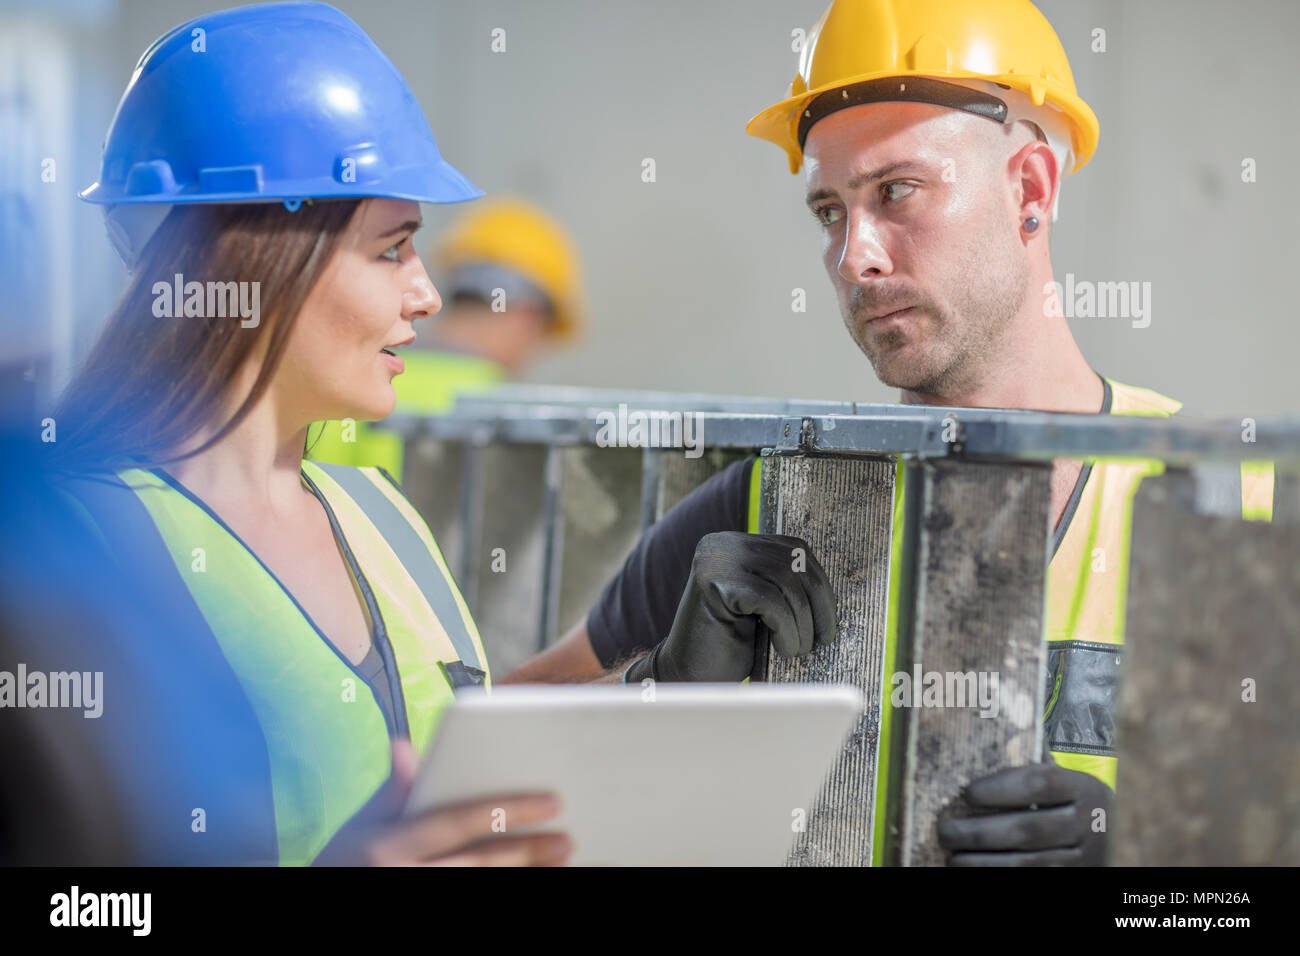 Woman with tablet talking to man with ladder on construction site - Stock Image